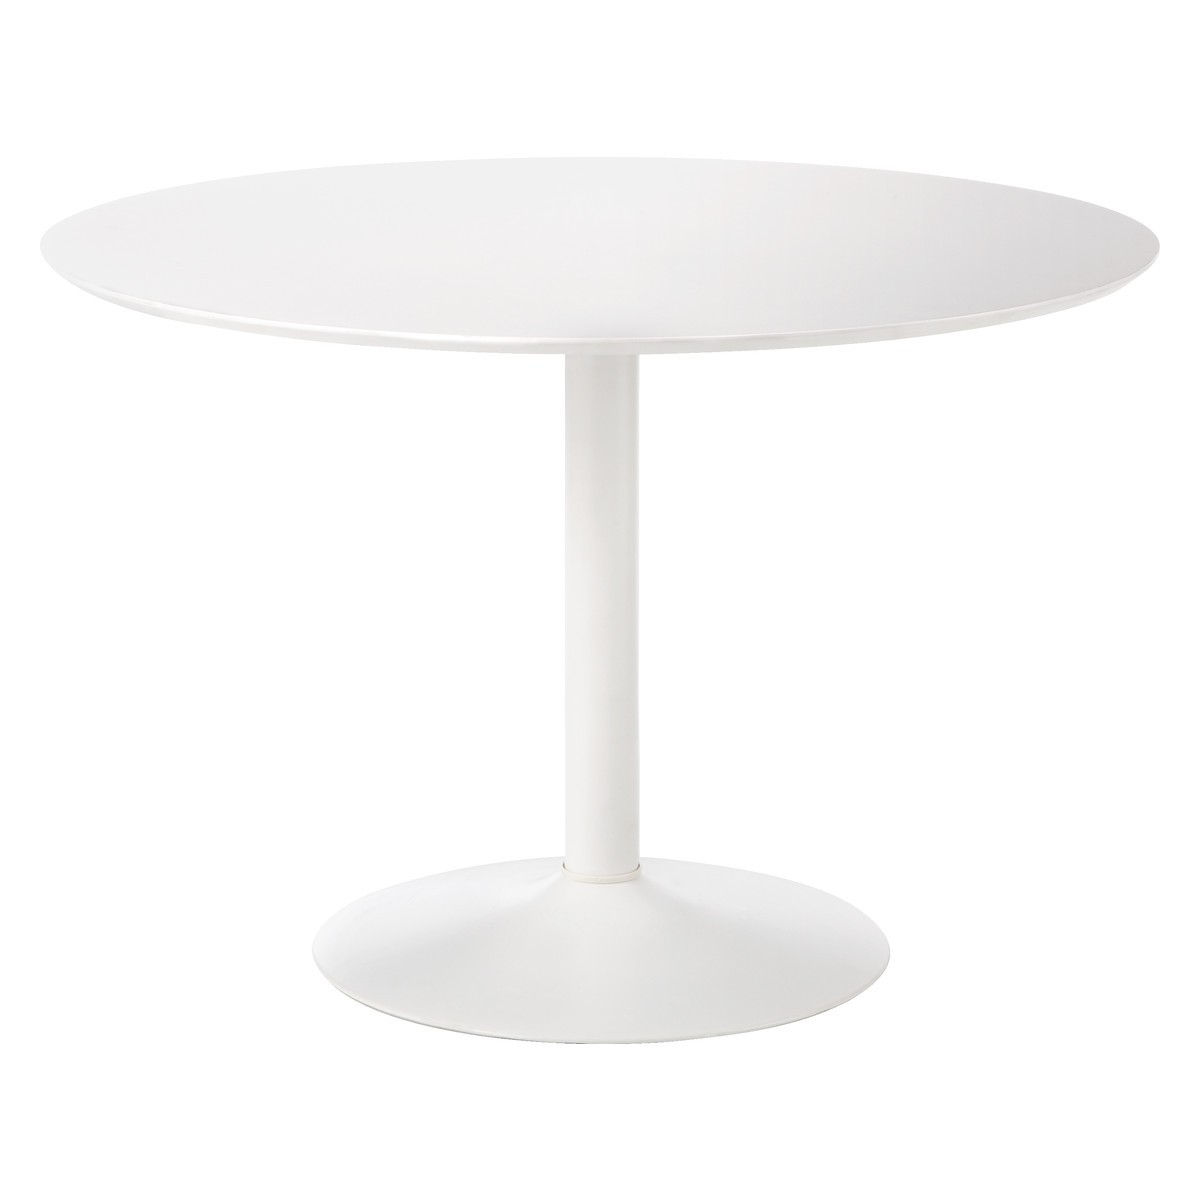 Buy Now At Habitat Uk Throughout Preferred Small Round White Dining Tables (View 5 of 25)